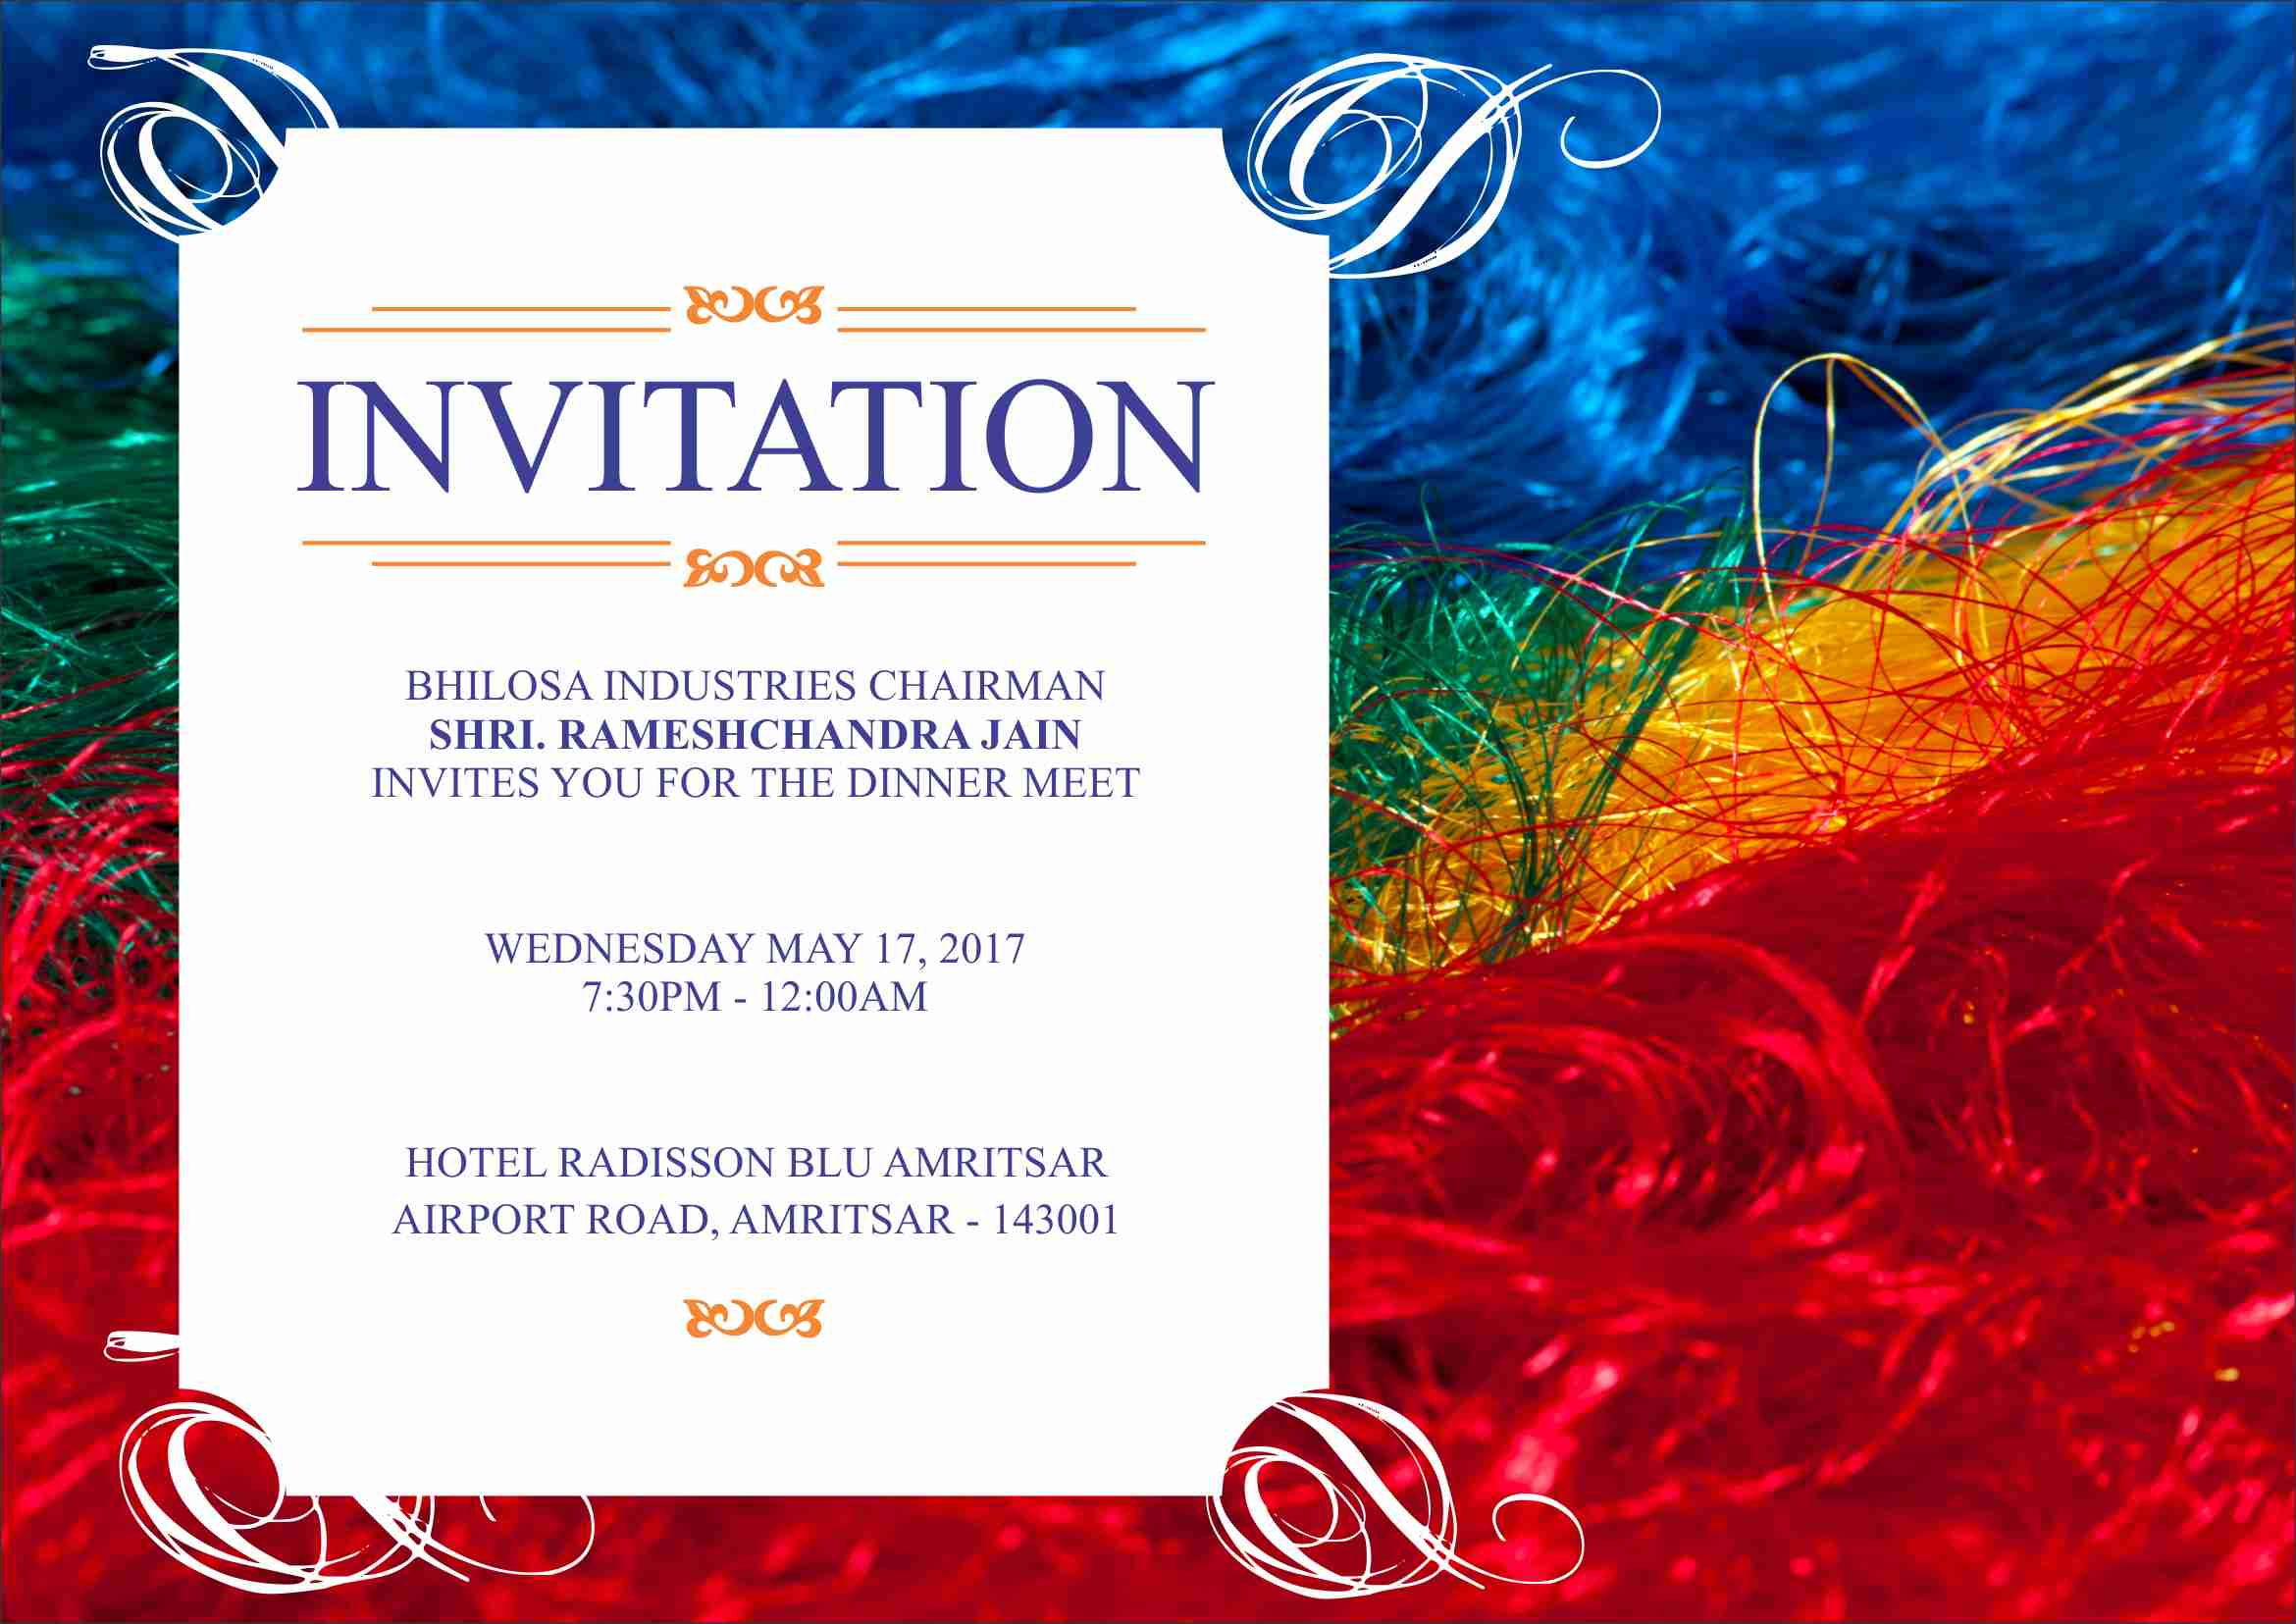 Invitation Card Designing Services in India | Creative Bulls